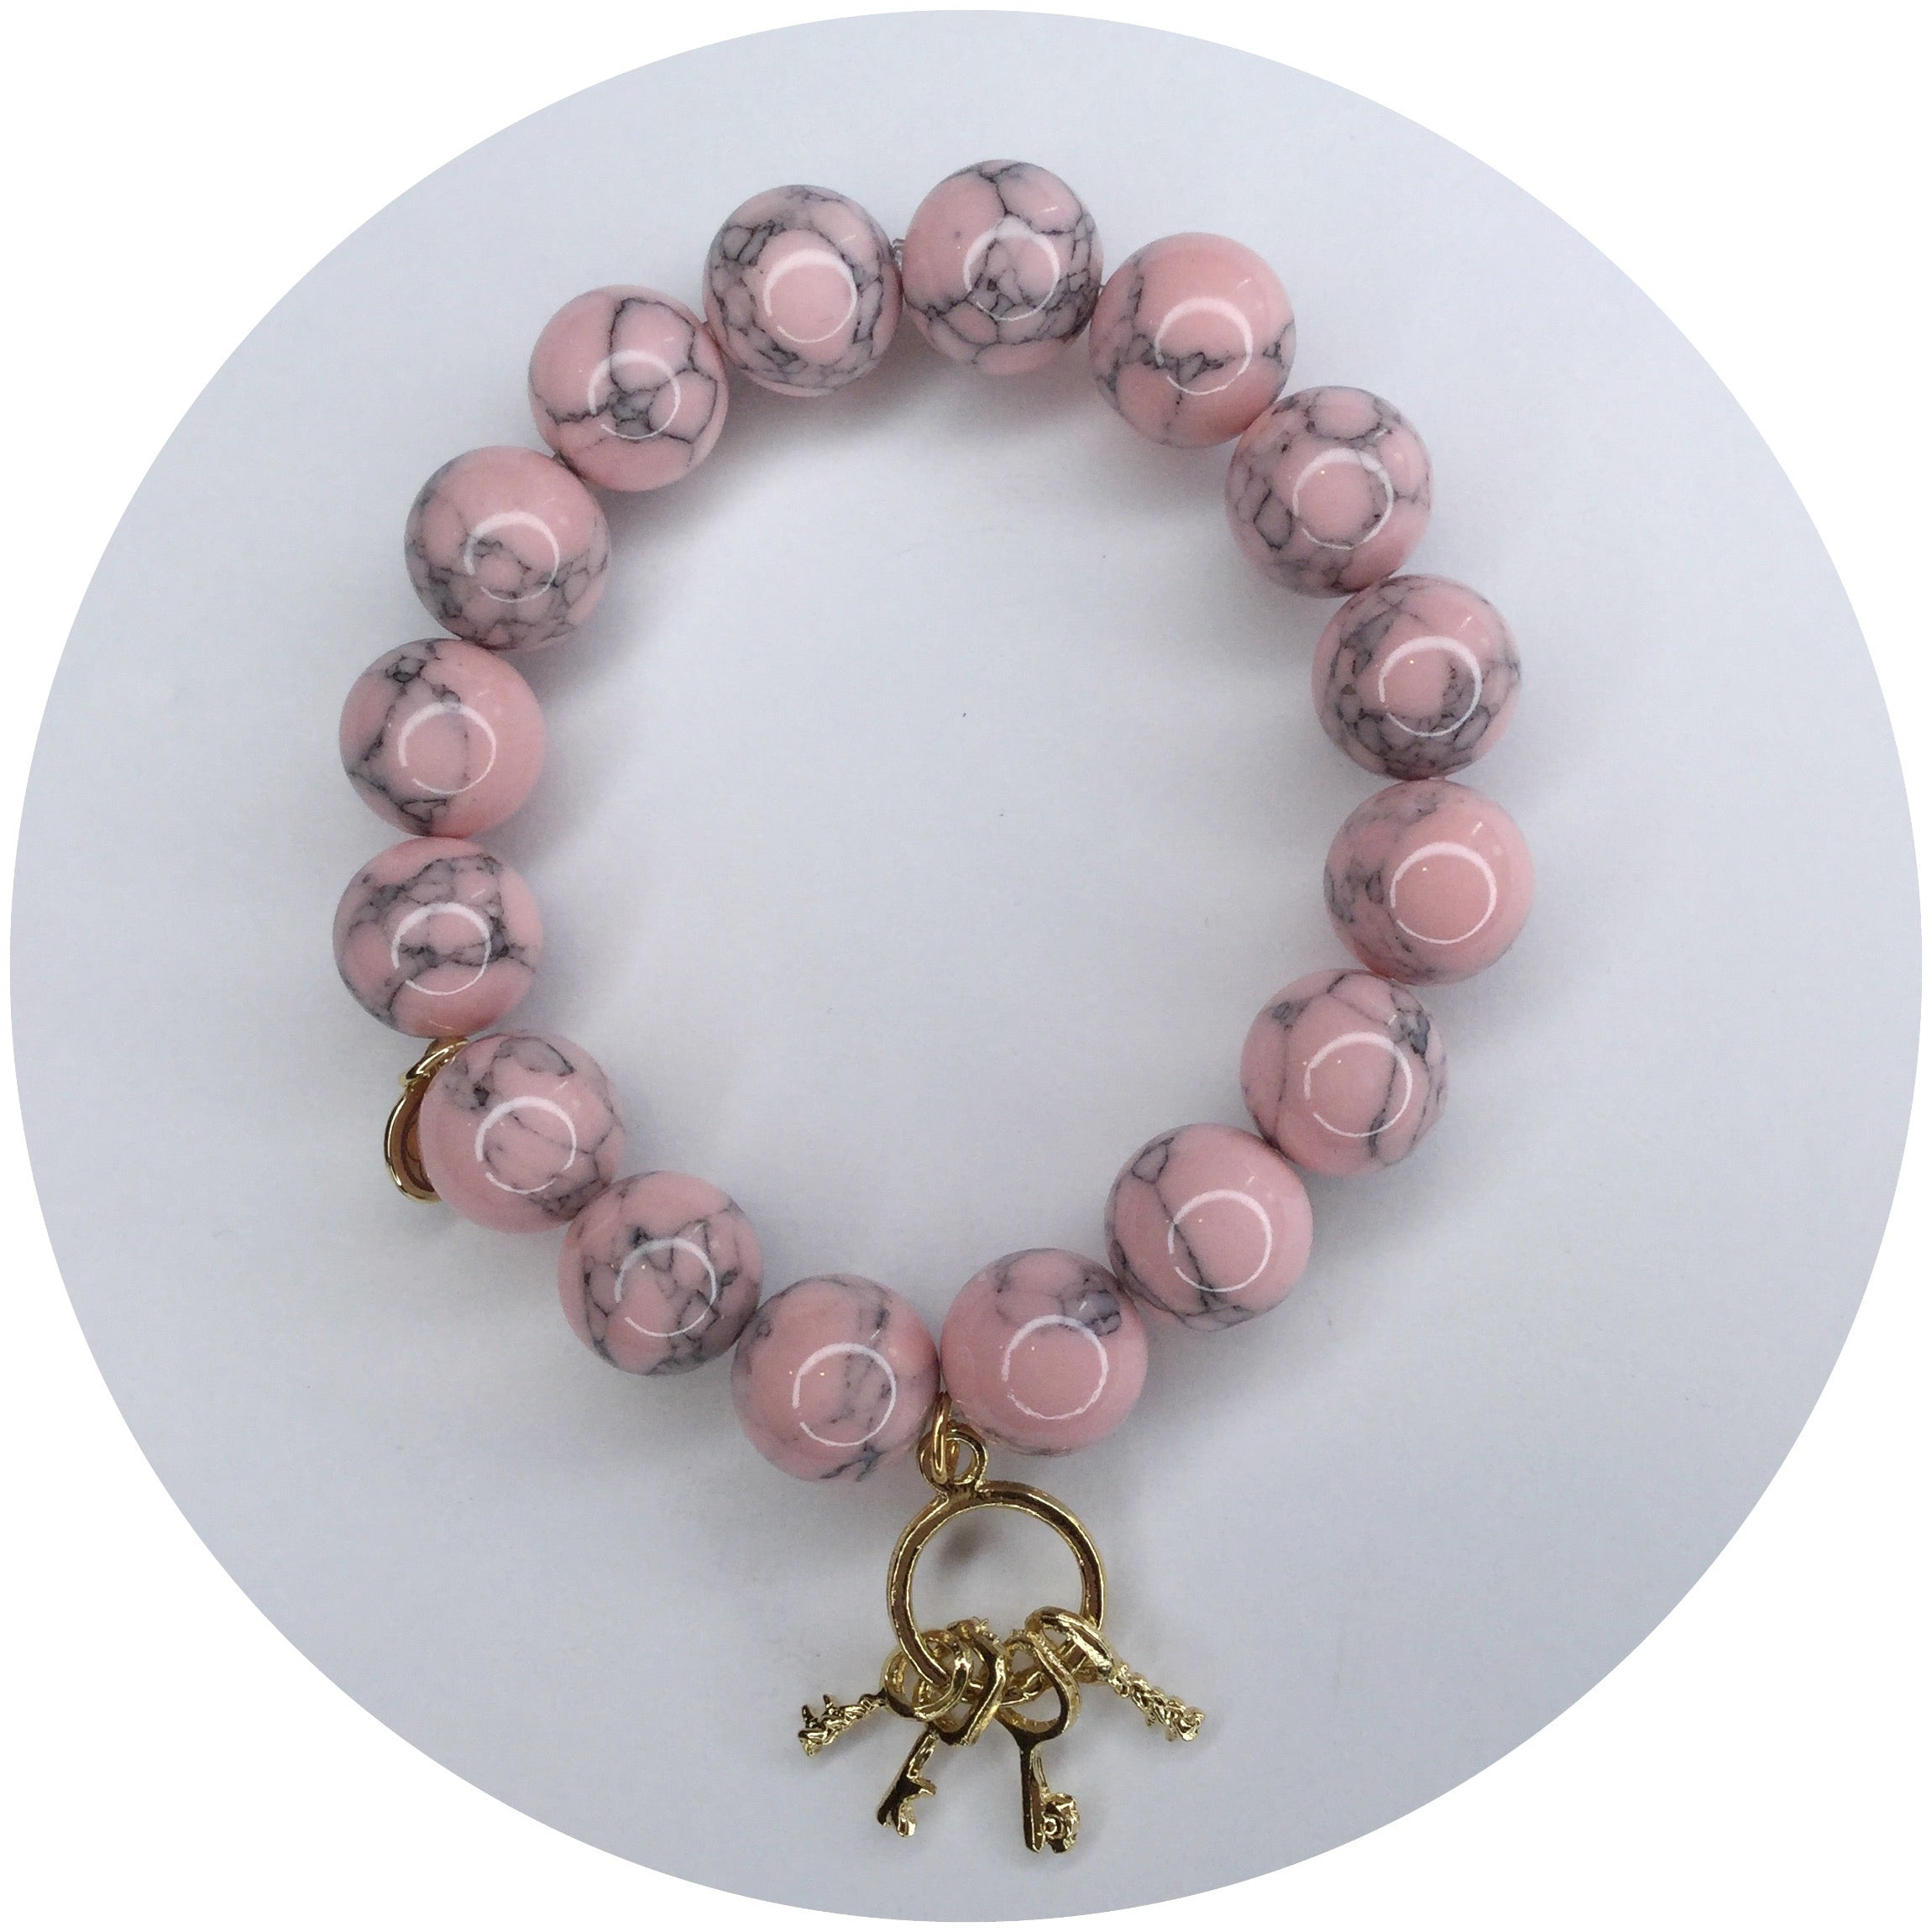 Light Pink Howlite with Gold Keys - Oriana Lamarca LLC